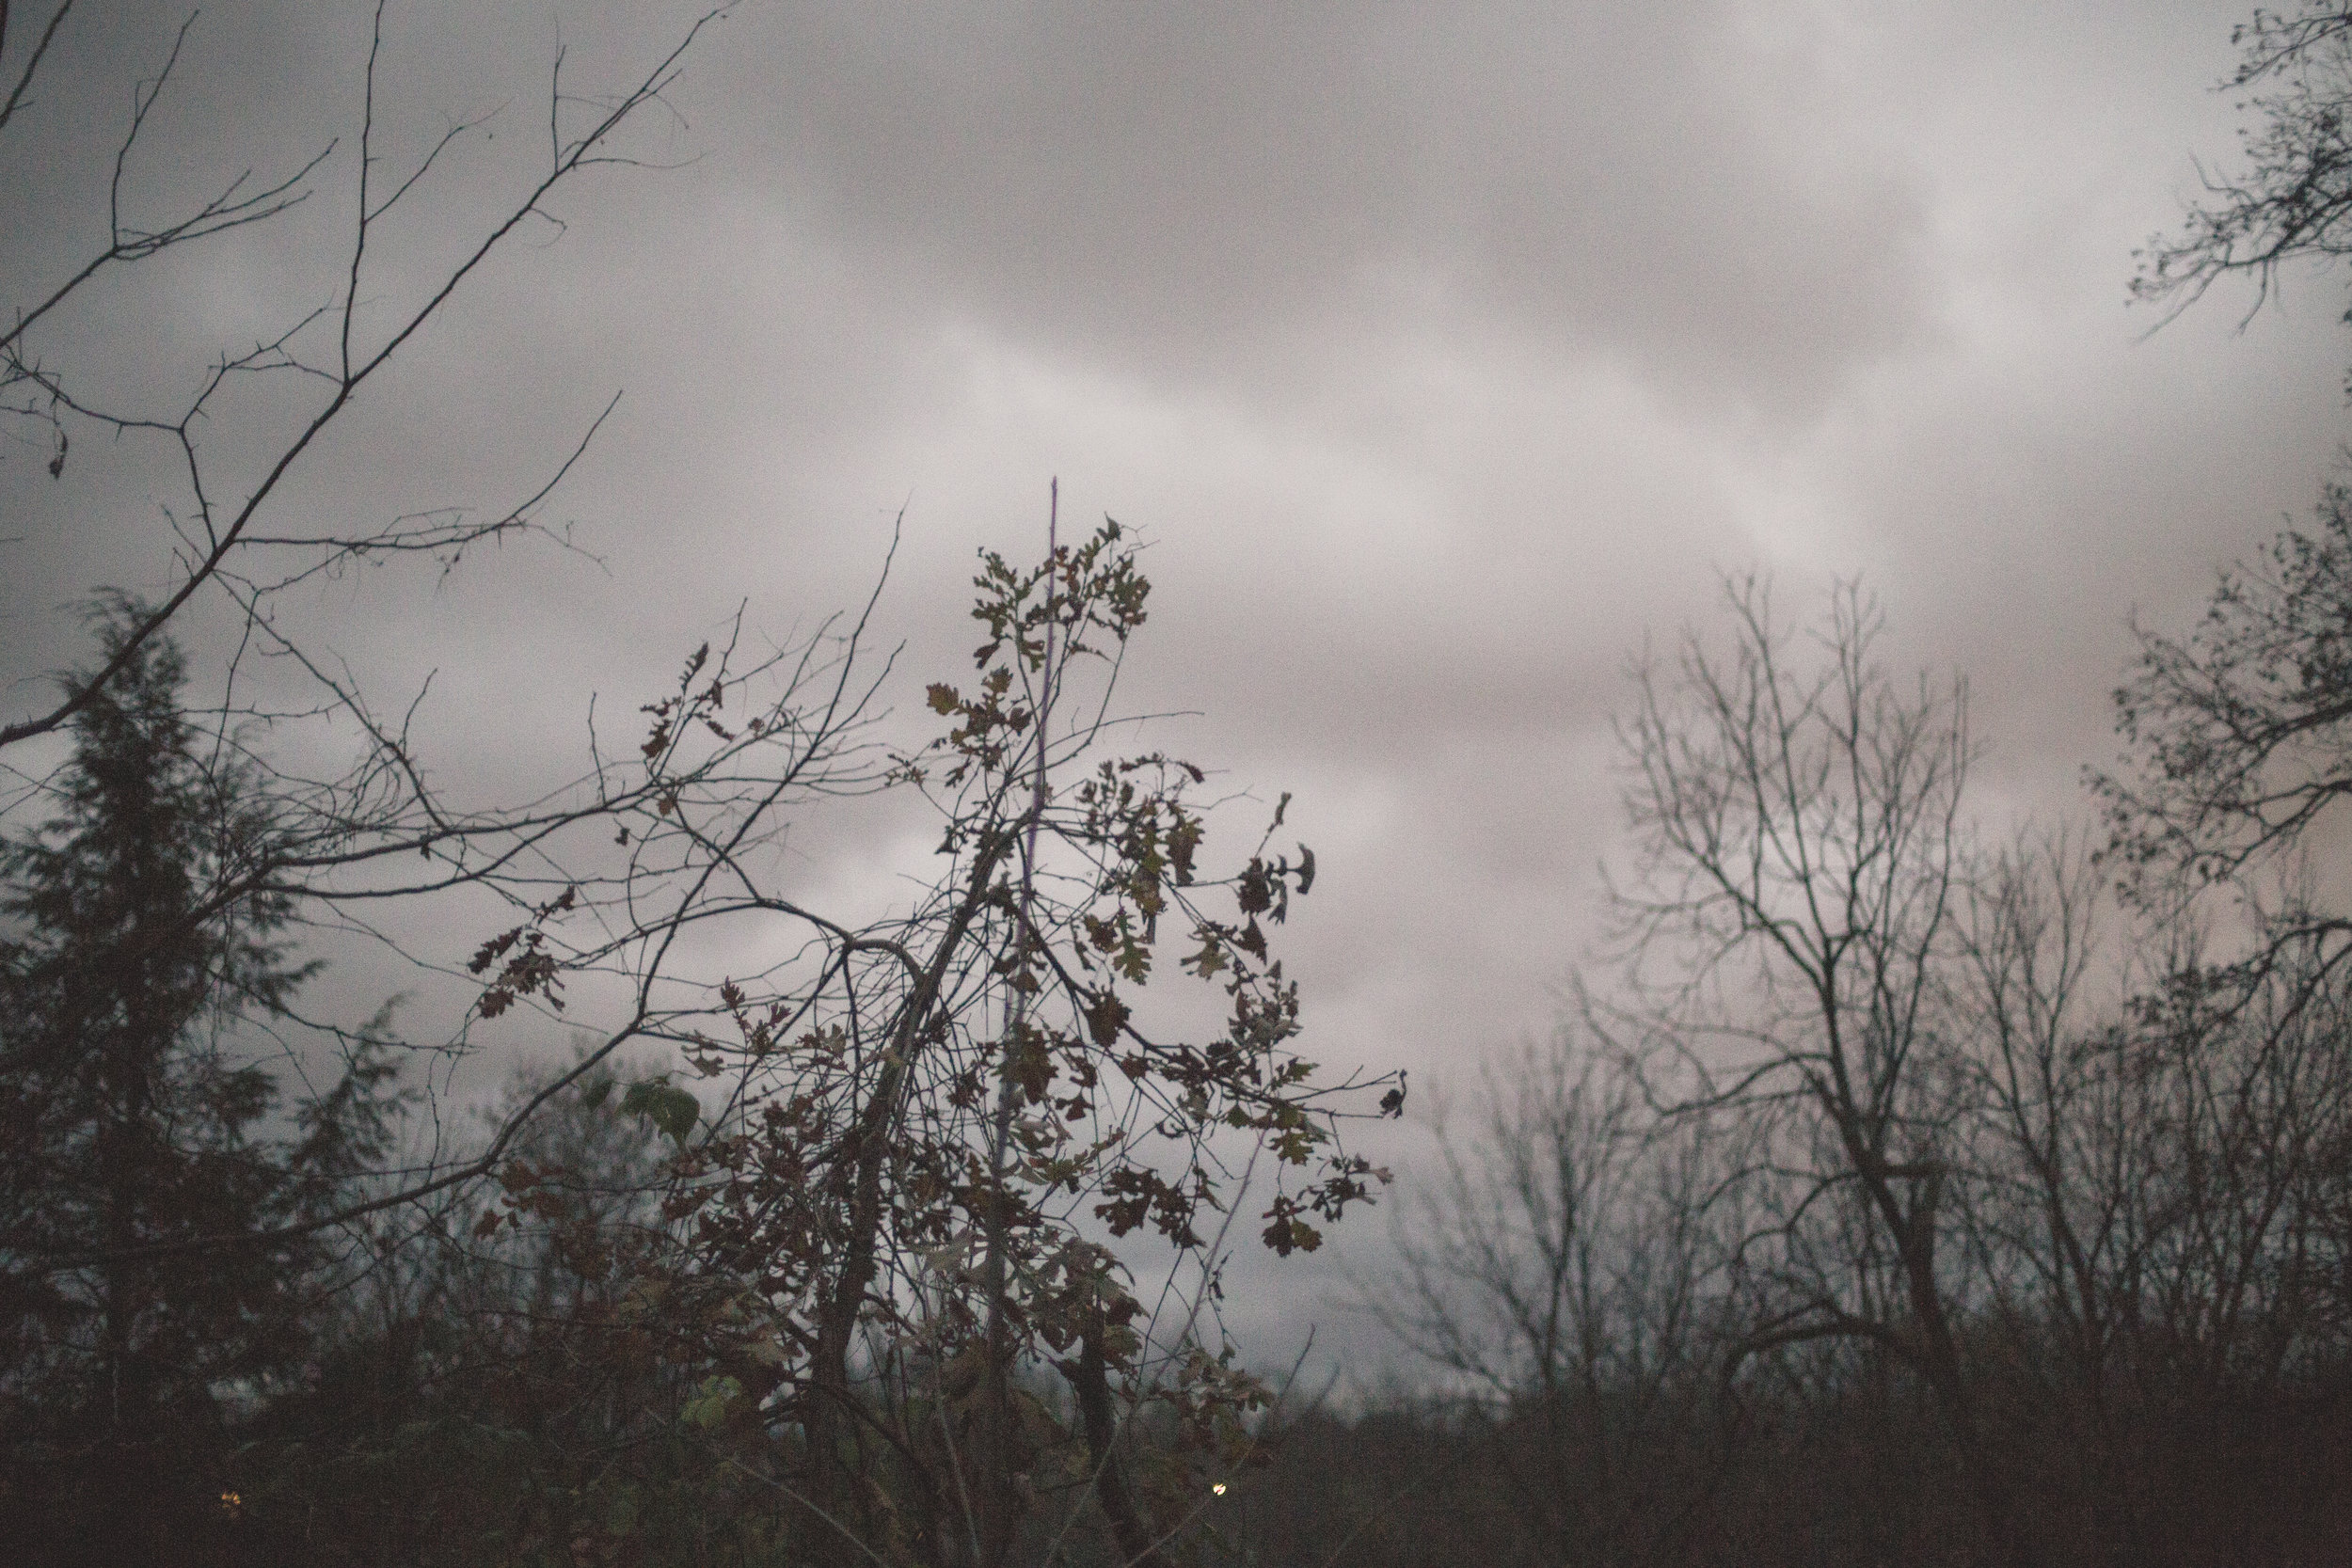 314 // 366 Stormy day on the creek